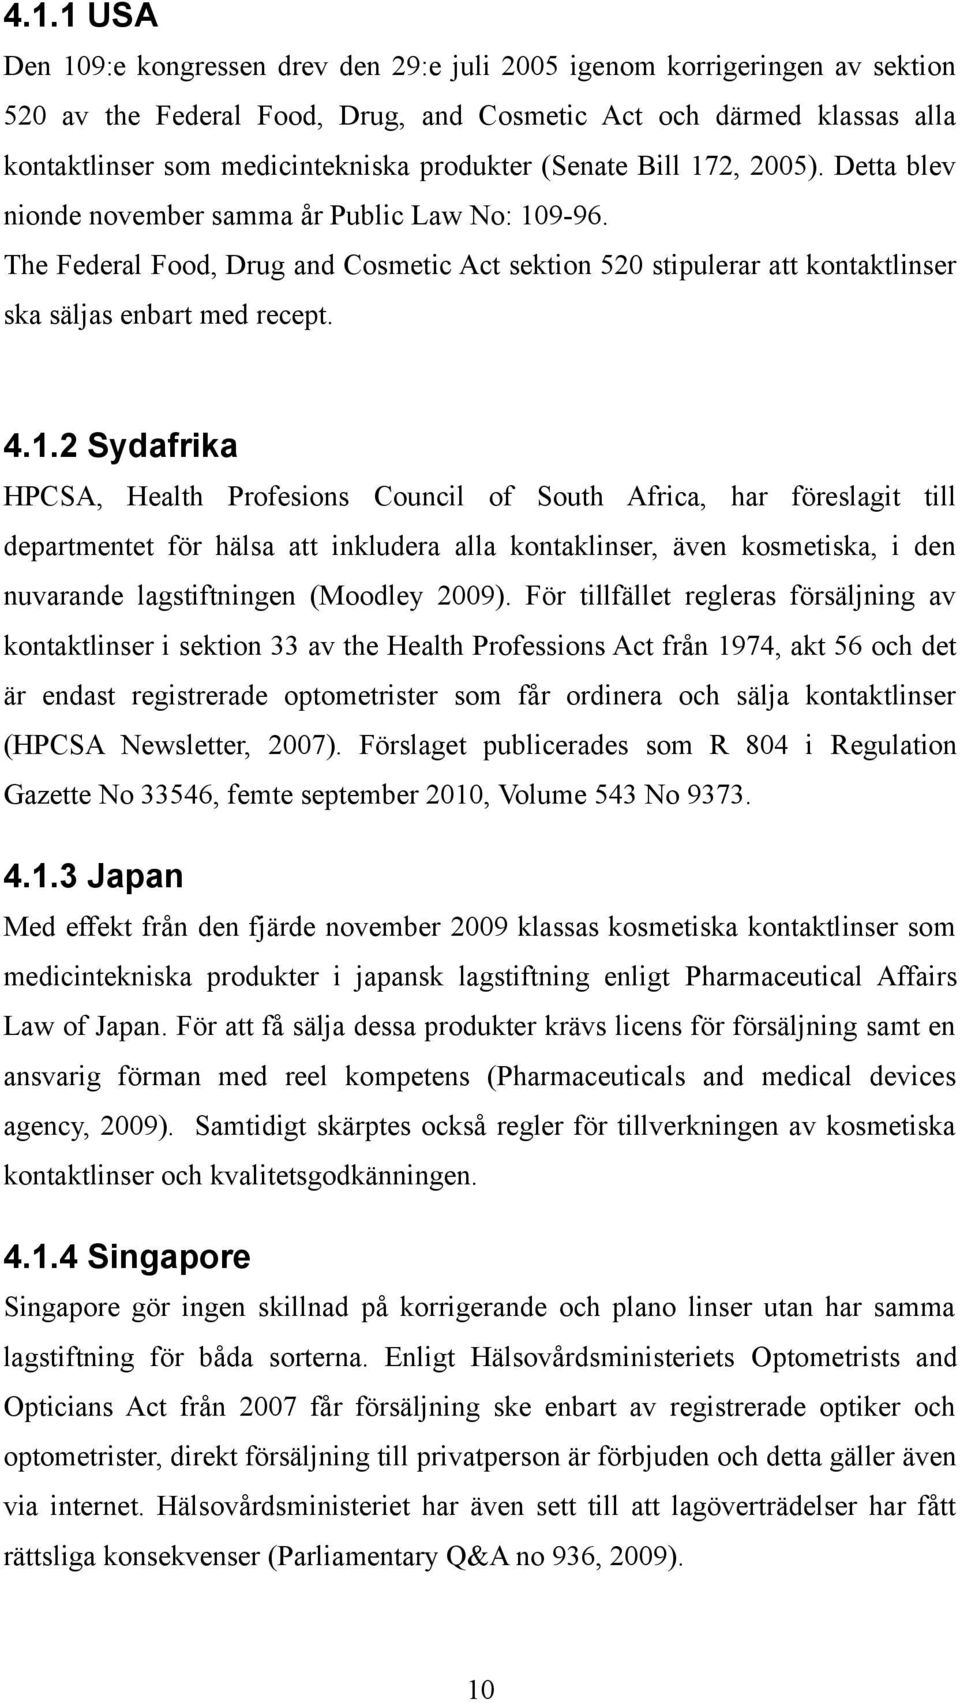 The Federal Food, Drug and Cosmetic Act sektion 520 stipulerar att kontaktlinser ska säljas enbart med recept. 4.1.